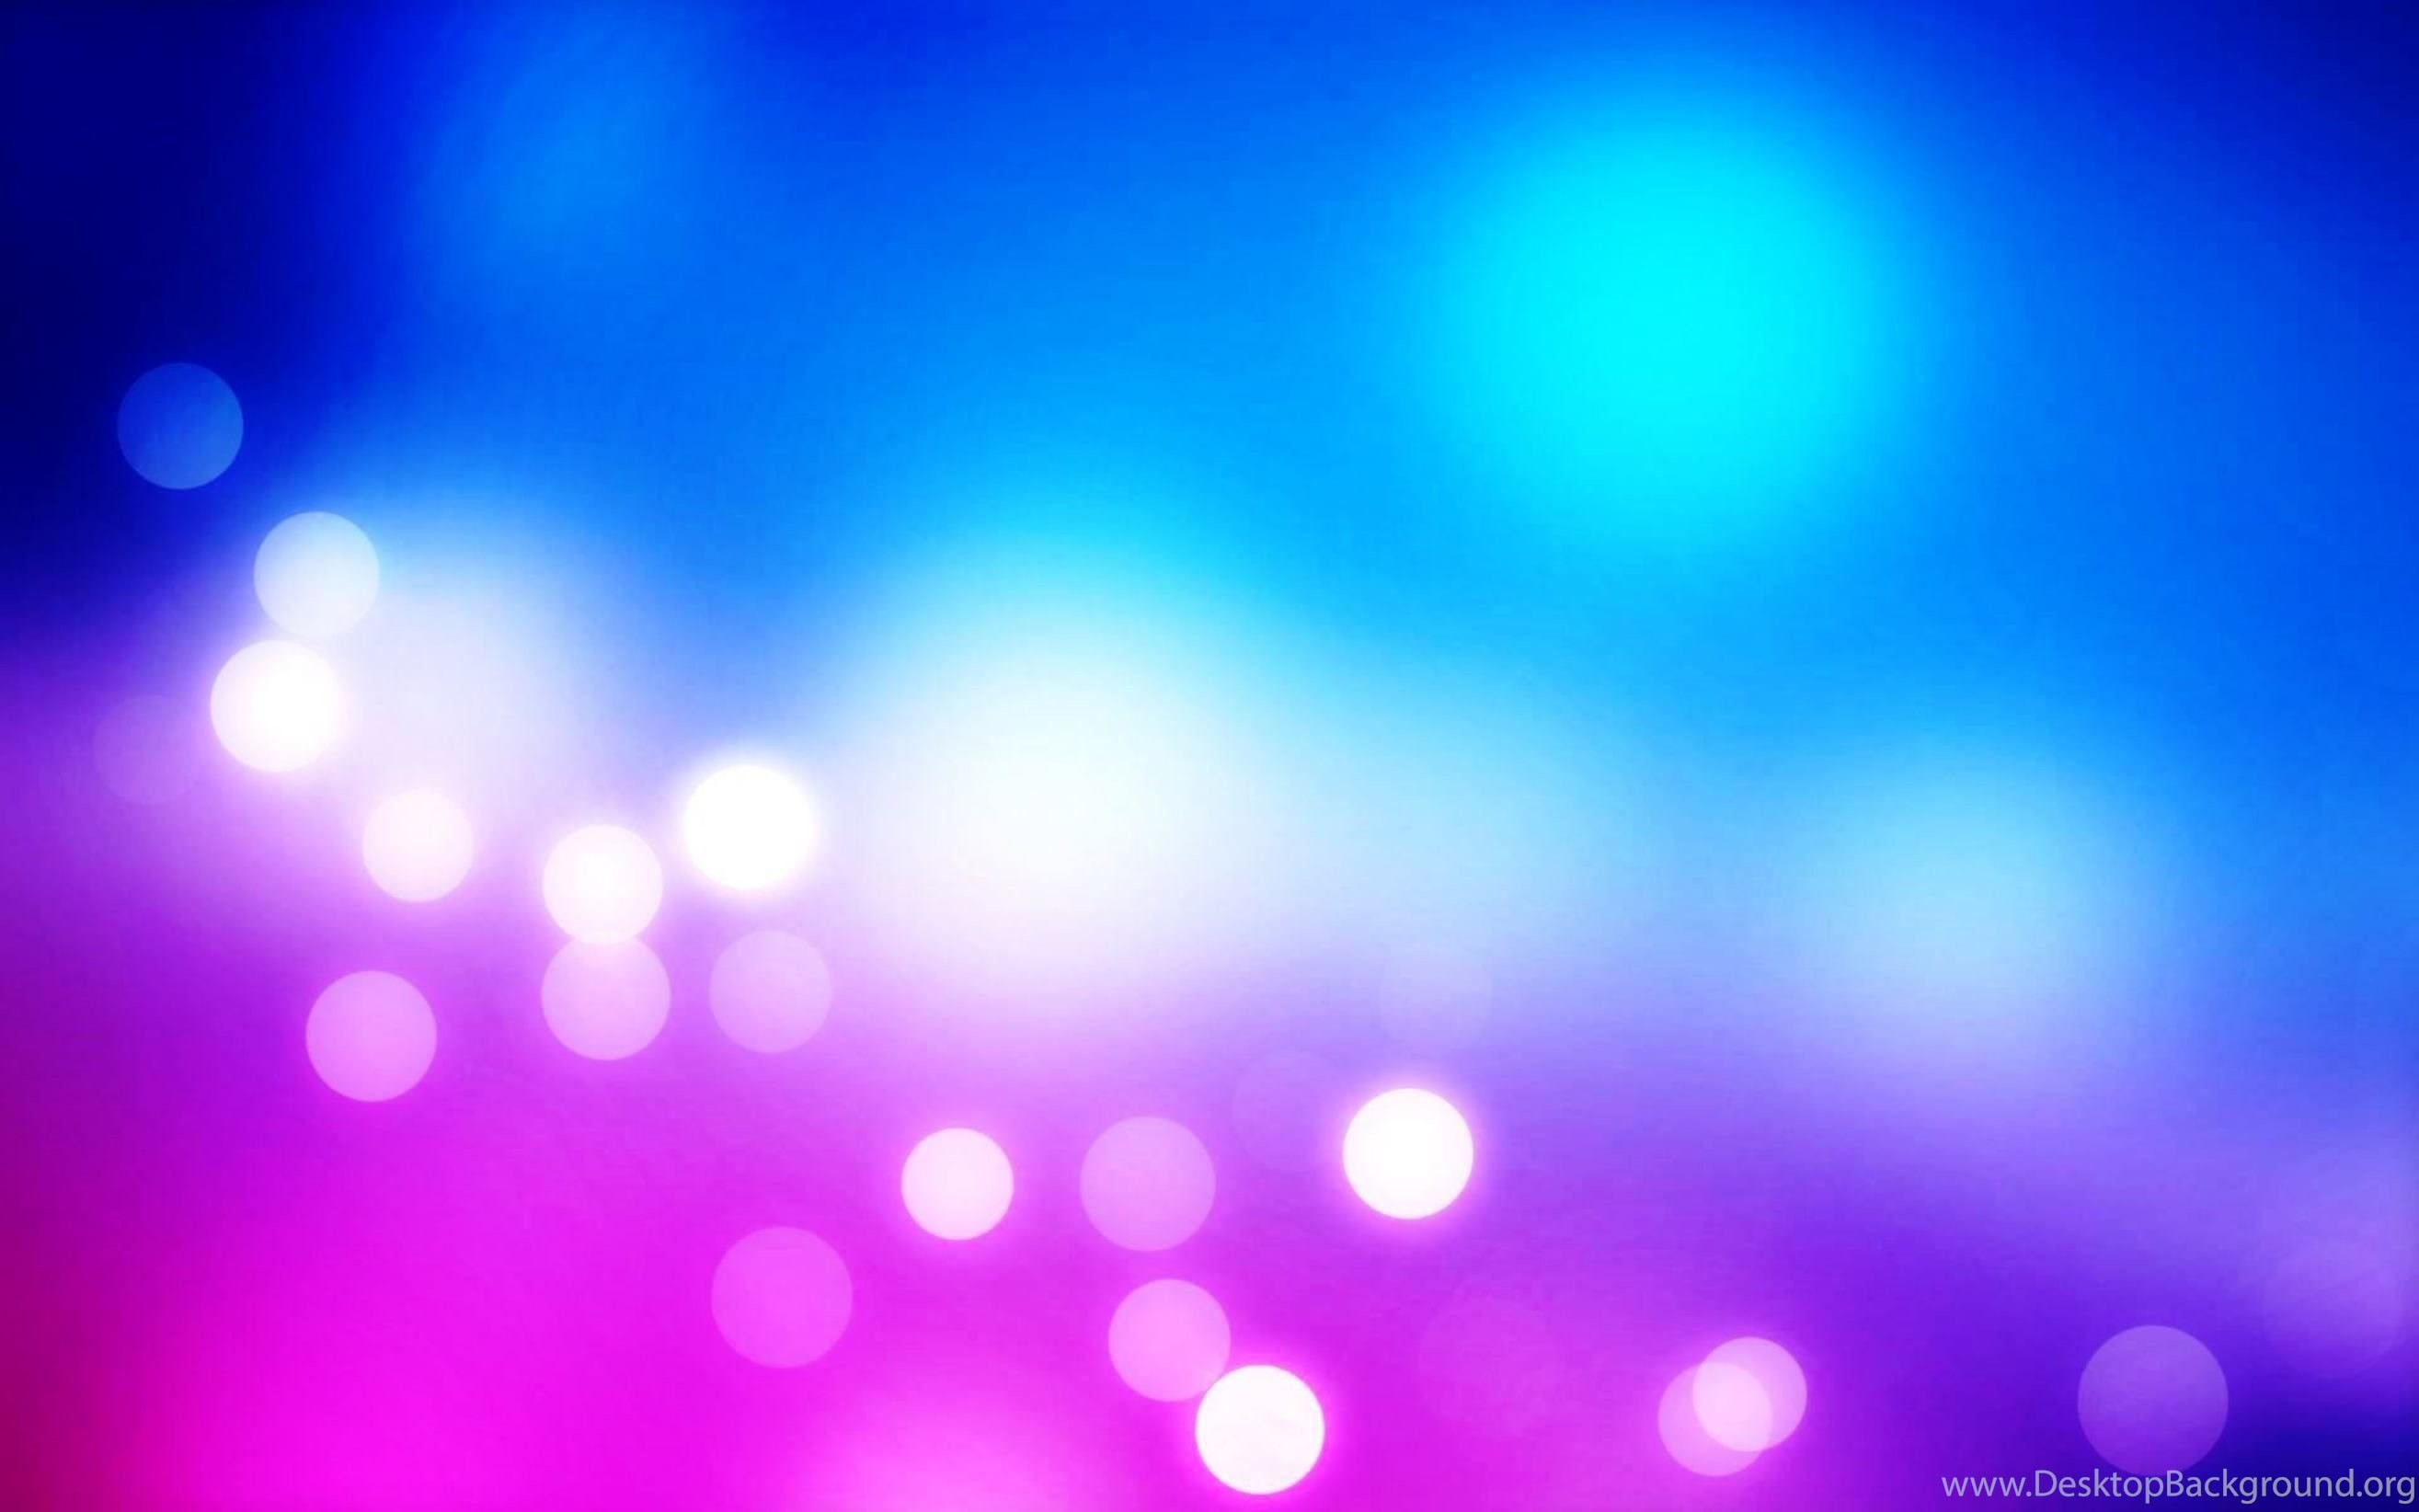 2630x1644 Cool Light Blue And Purple Backgrounds